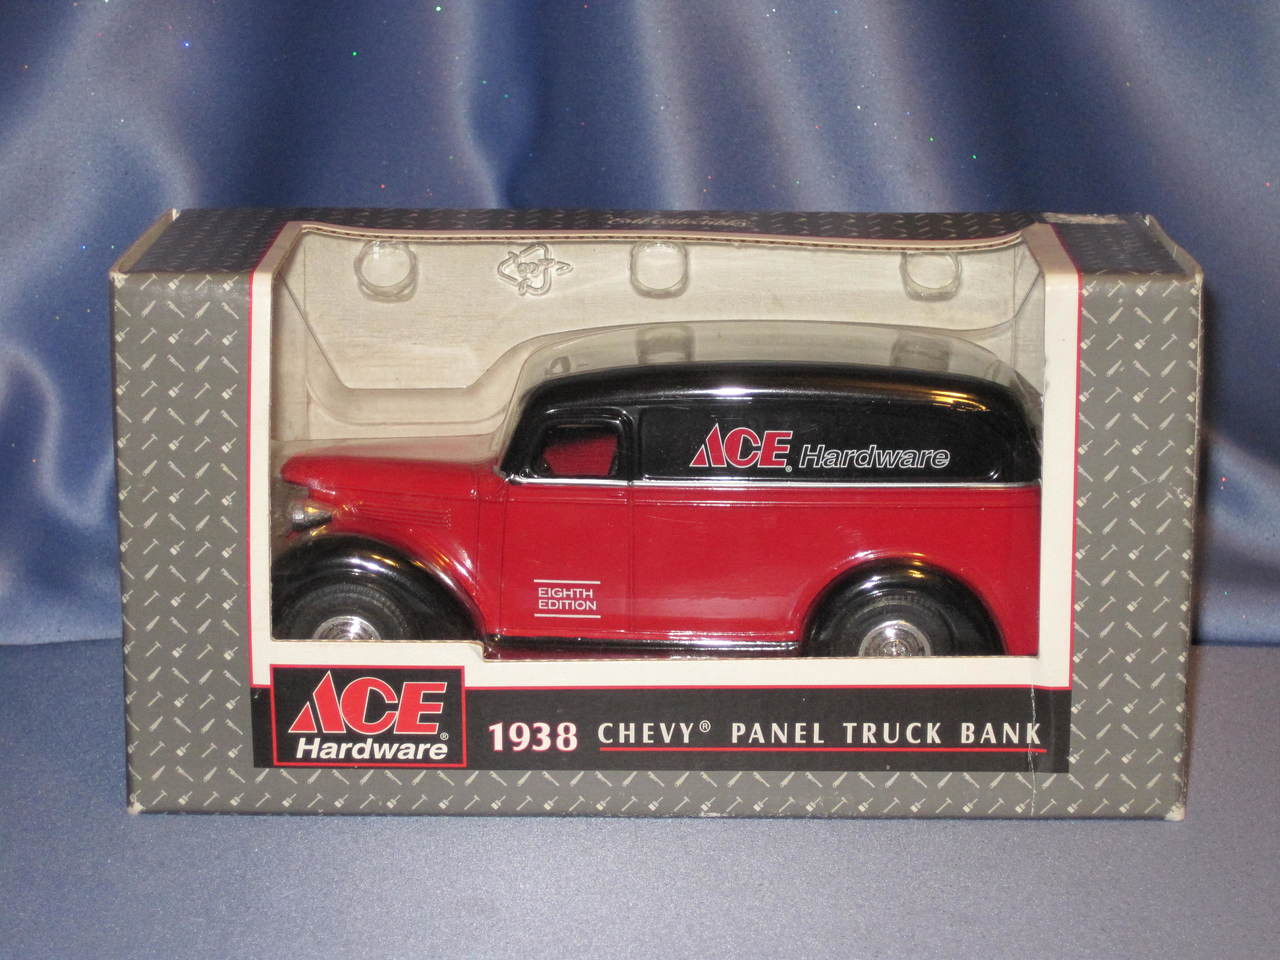 Ertl Ace Hardware 1938 Chevy Panel Truck Bank.